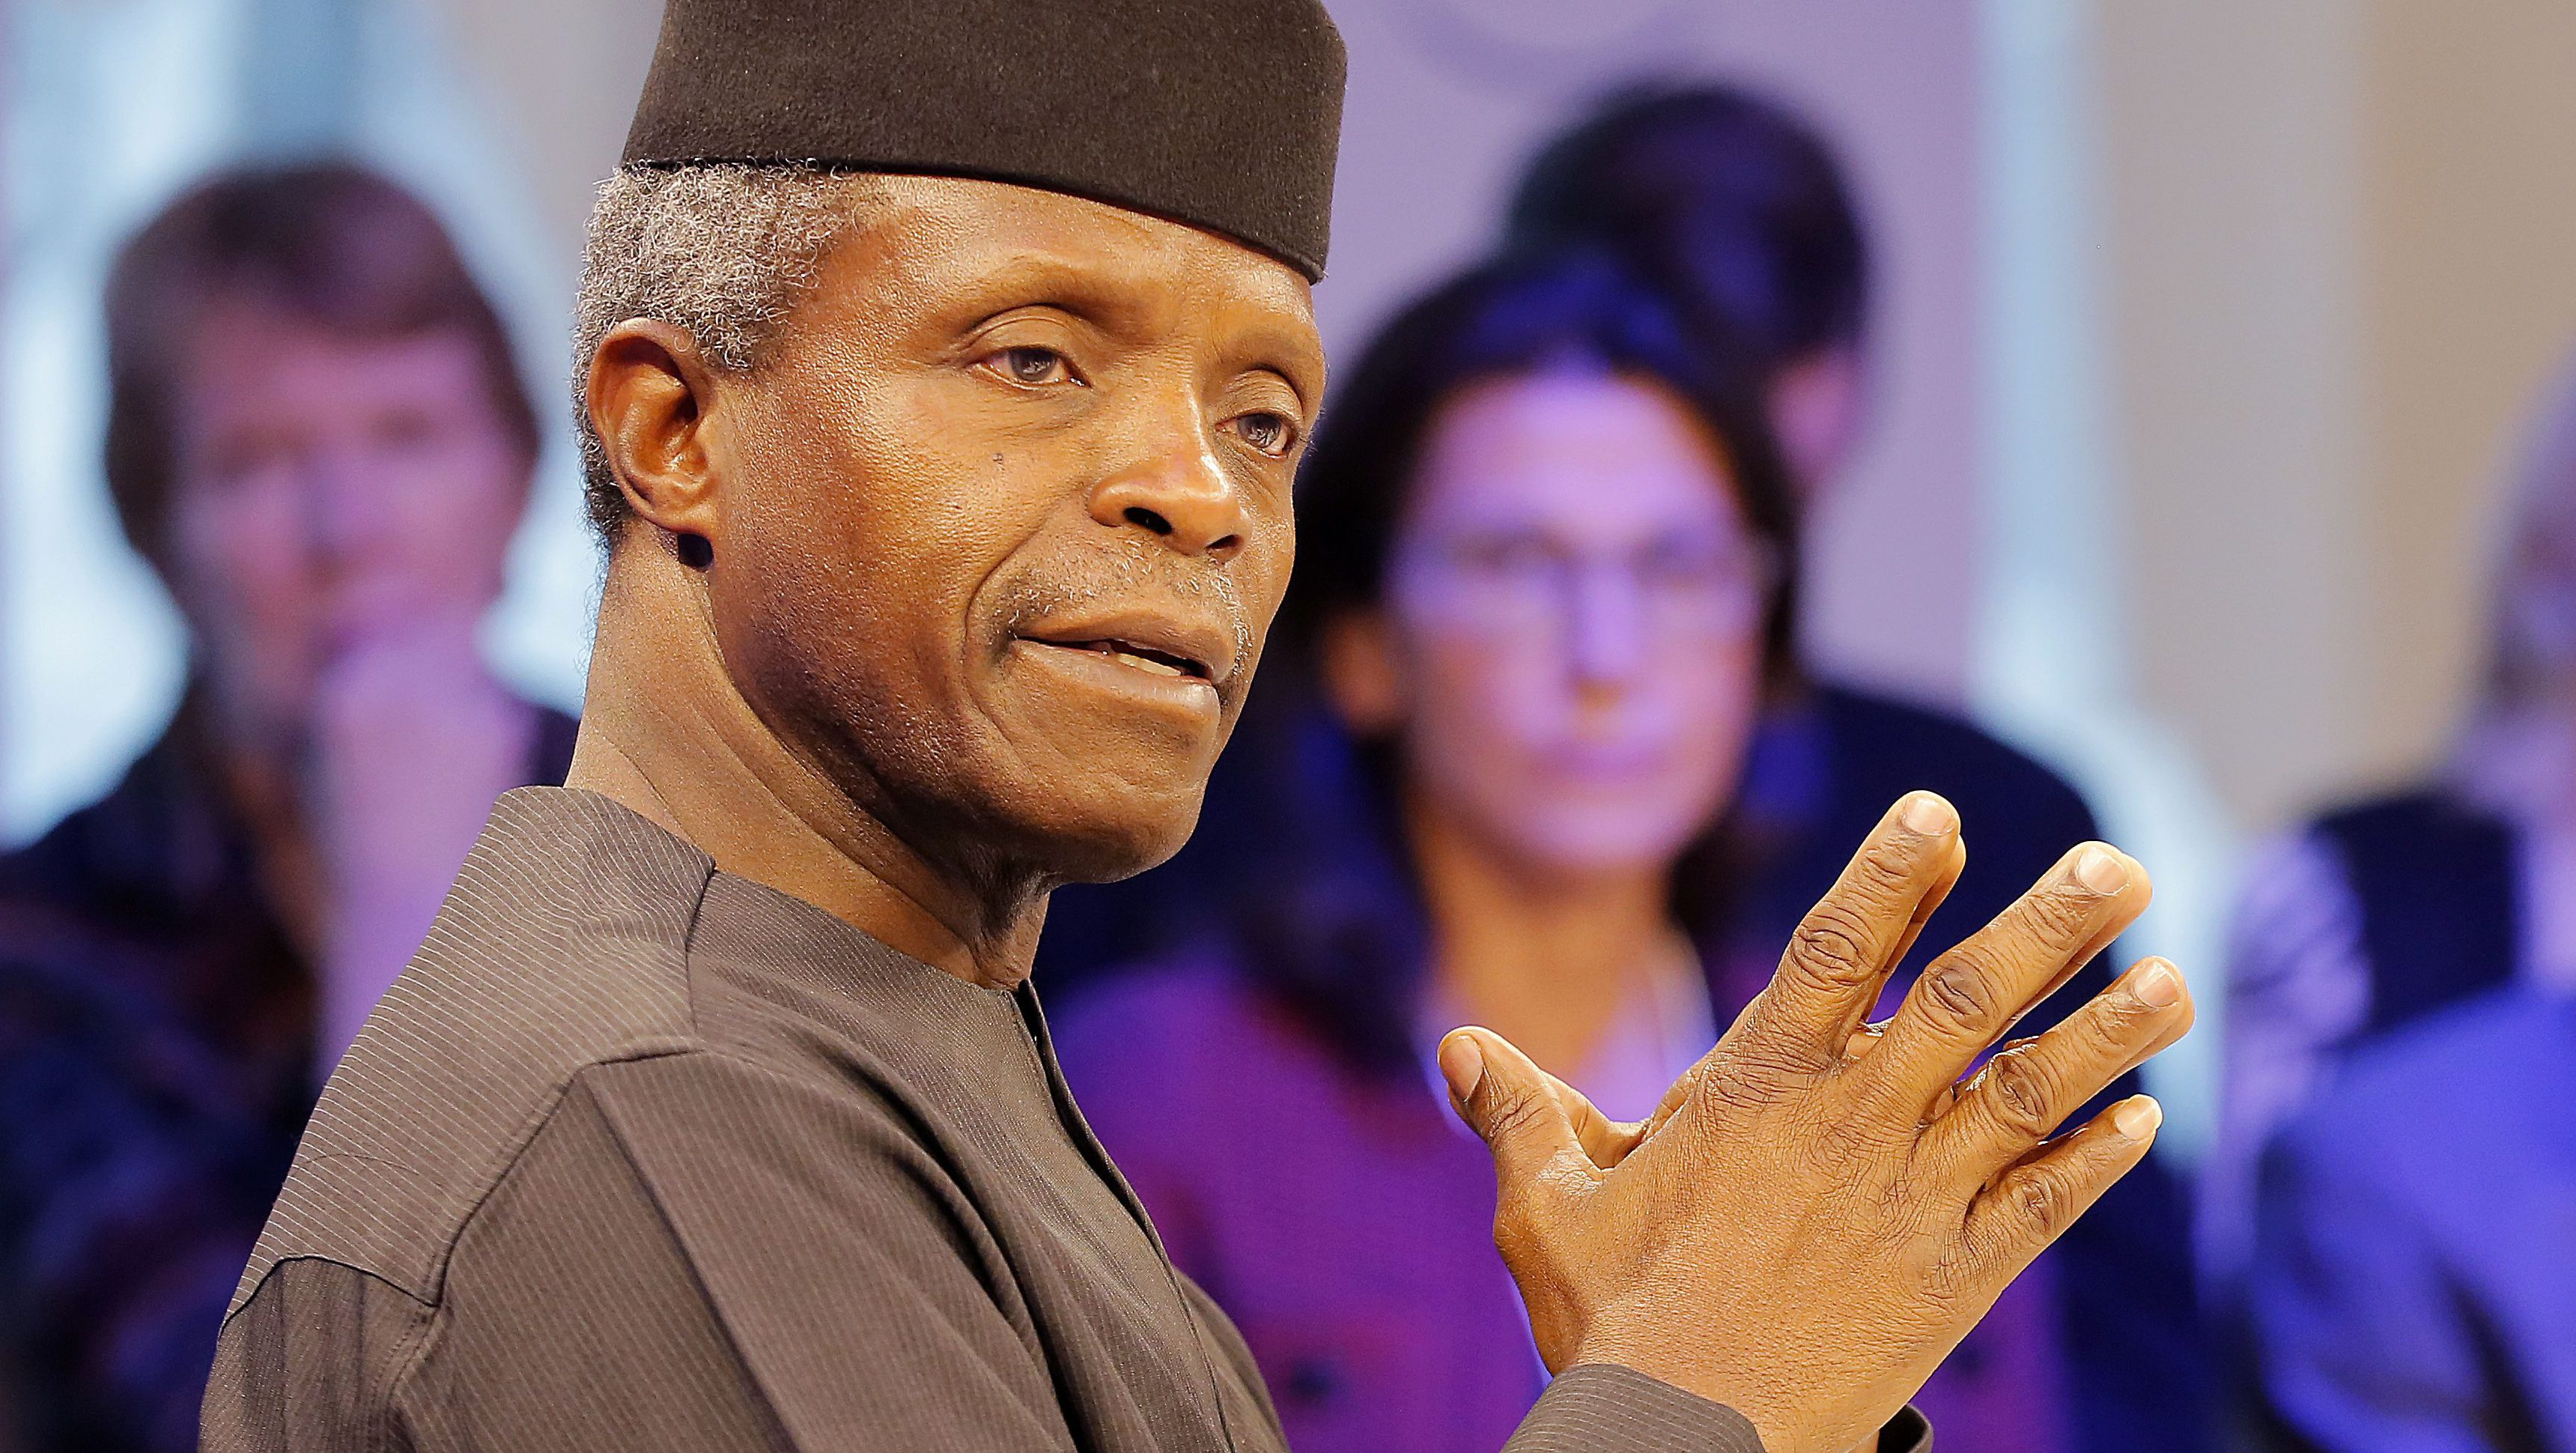 FILE- In this Tuesday, Jan.17, 2017 file photo, Nigeria's Vice President Yemi Osinbajo speaks at the World Economic Forum in Davos, Switzerland. When Nigerian President Muhammadu Buhari left for London on Jan. 19 on a month-long medical leave he handed power to Vice President Yemi Osinbajo, a 59-year-old lawyer and pastor who has been empowered to attack the country's problems with an energy that has surprised observers and led some to suggest he should stay in charge for good.